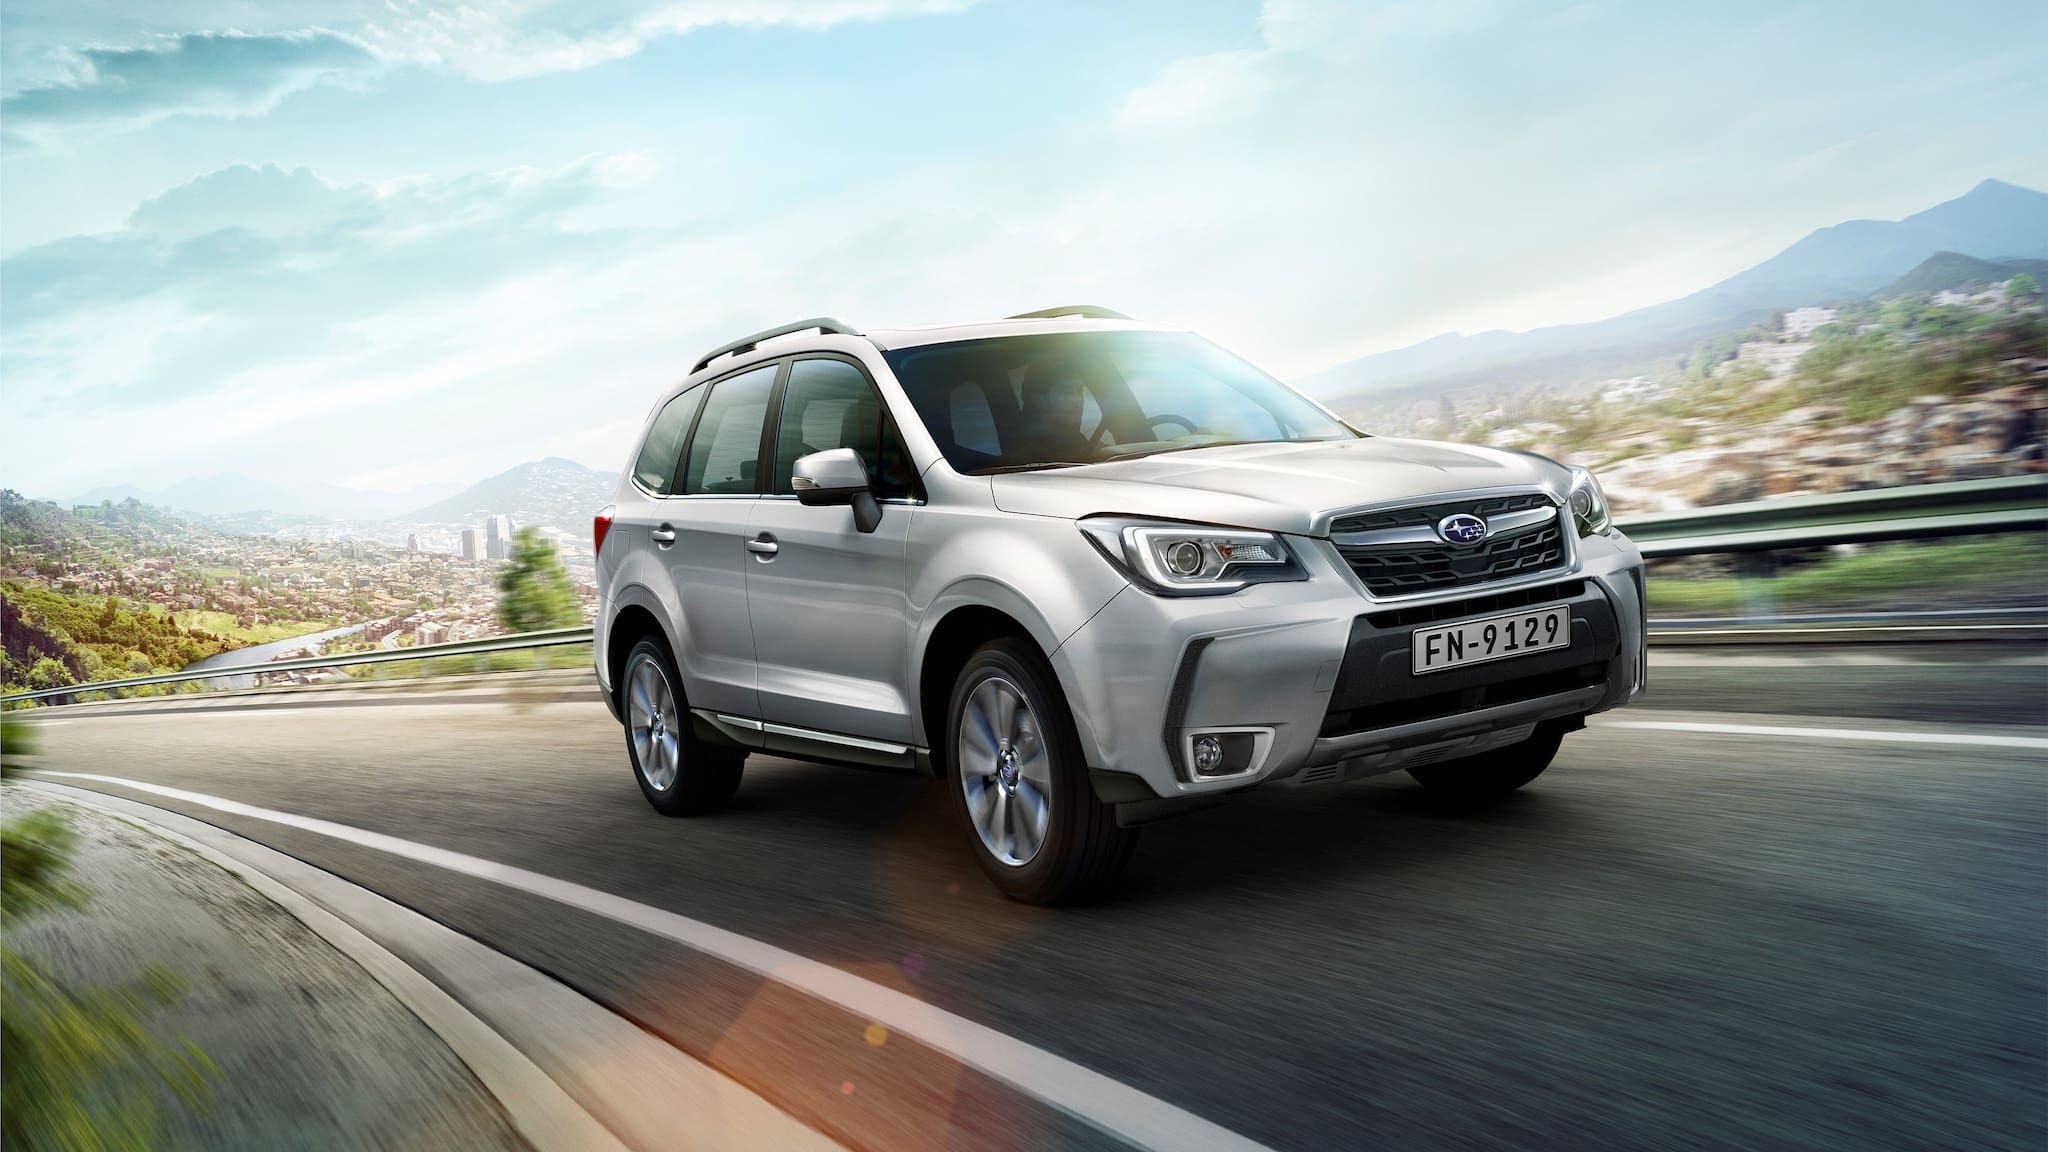 Subaru PH Offers Great Deals for Last Batch of Previous-Gen Forester i-P, XT Units